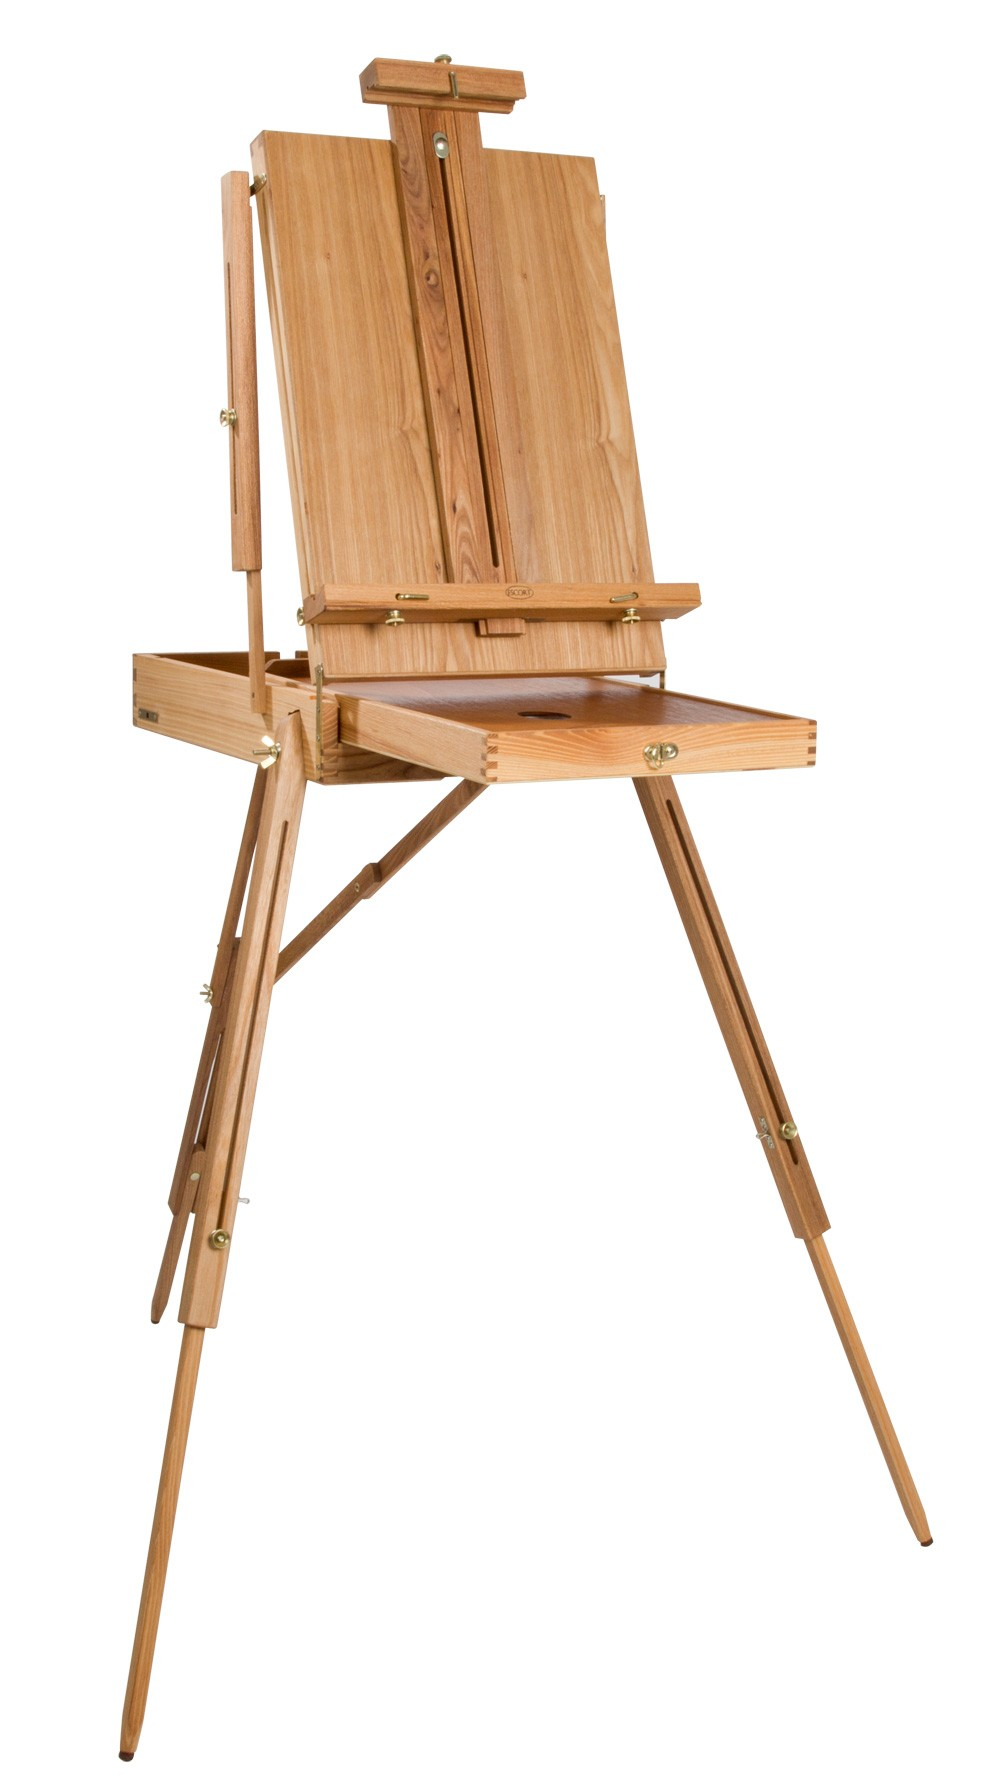 julian french easel instructions